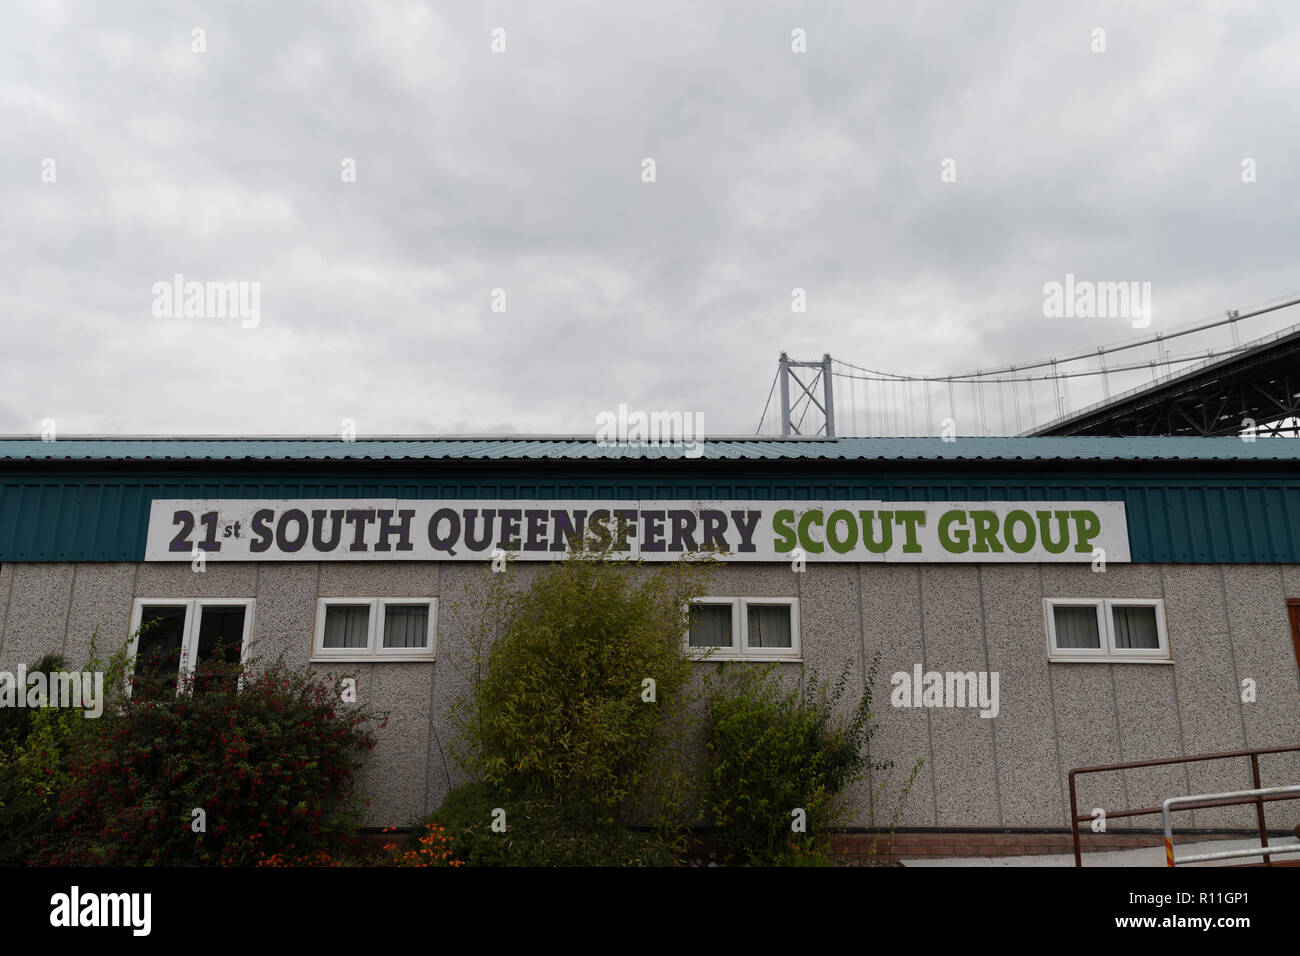 The South Queensferry Scout Hut, Port Edgar, South Queensferry, Scotland - Stock Image